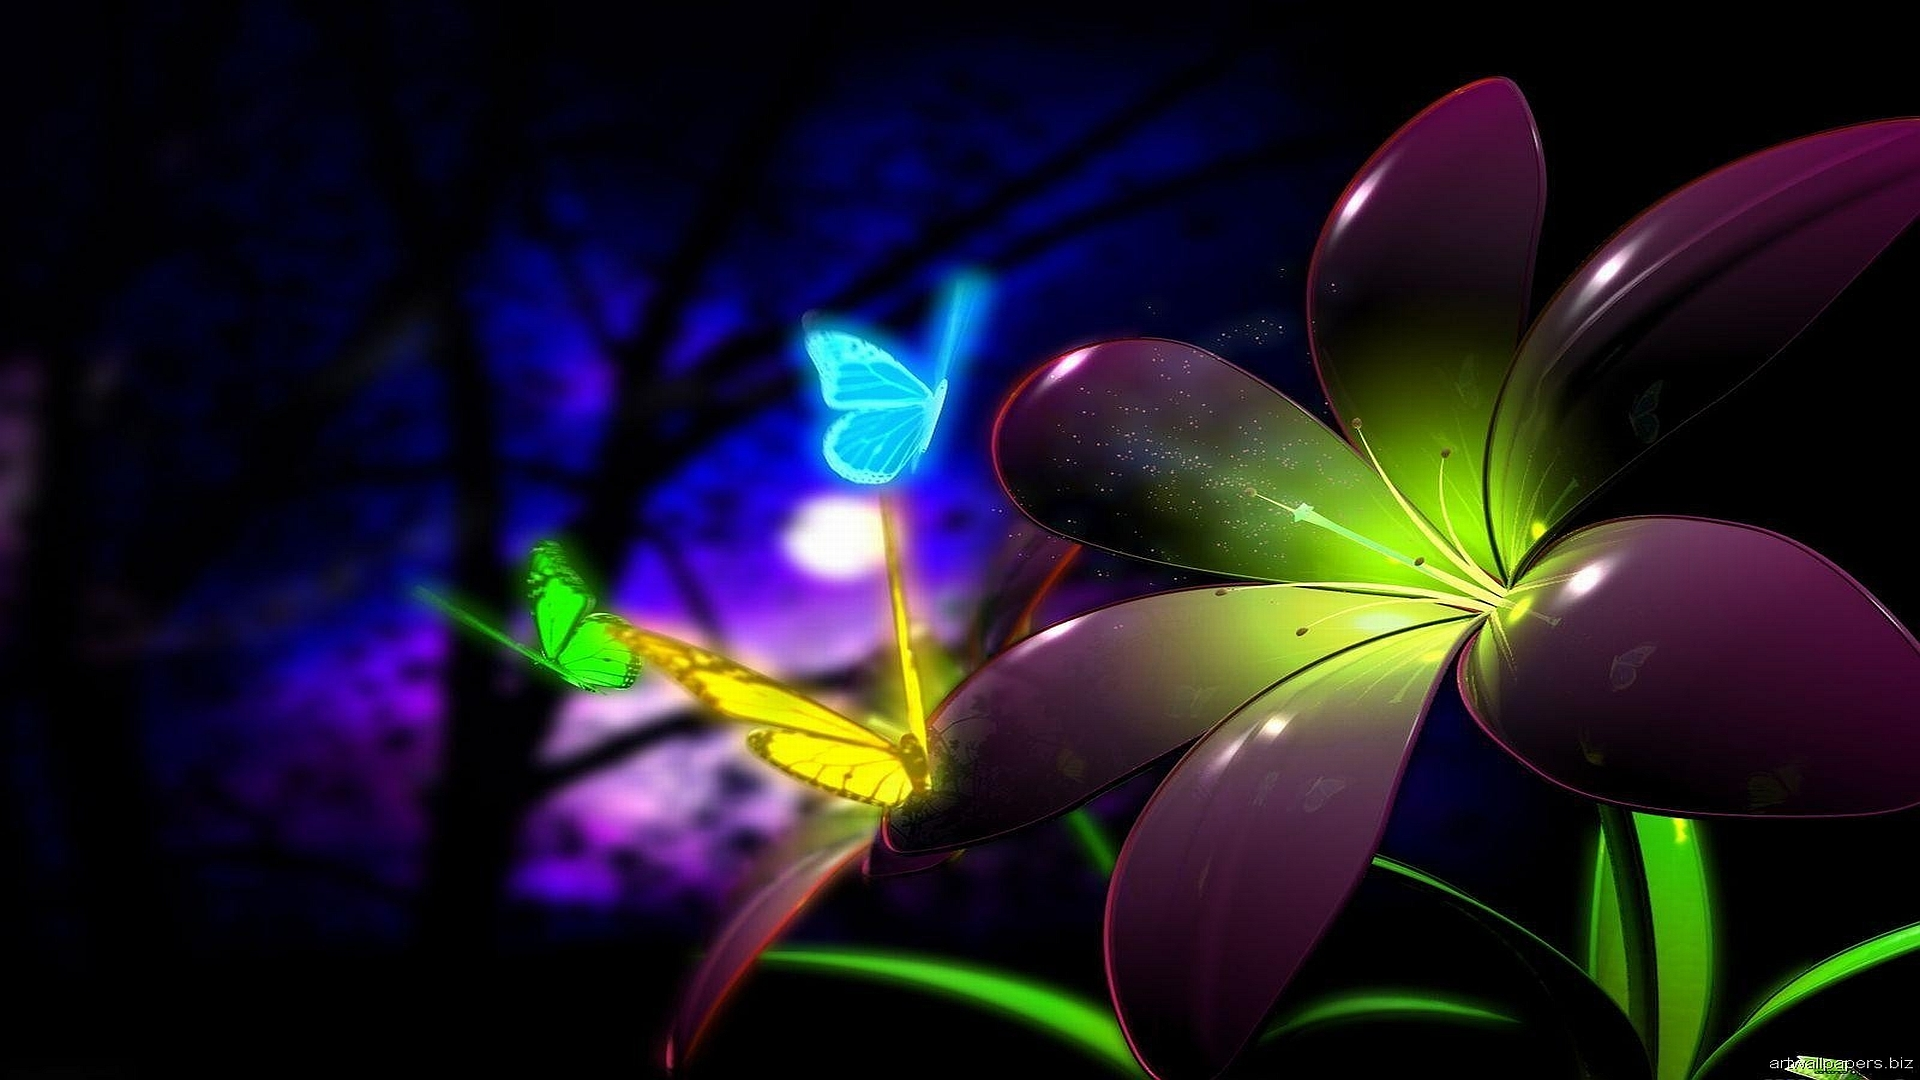 Neon Butterflies wallpaper background 1920x1080